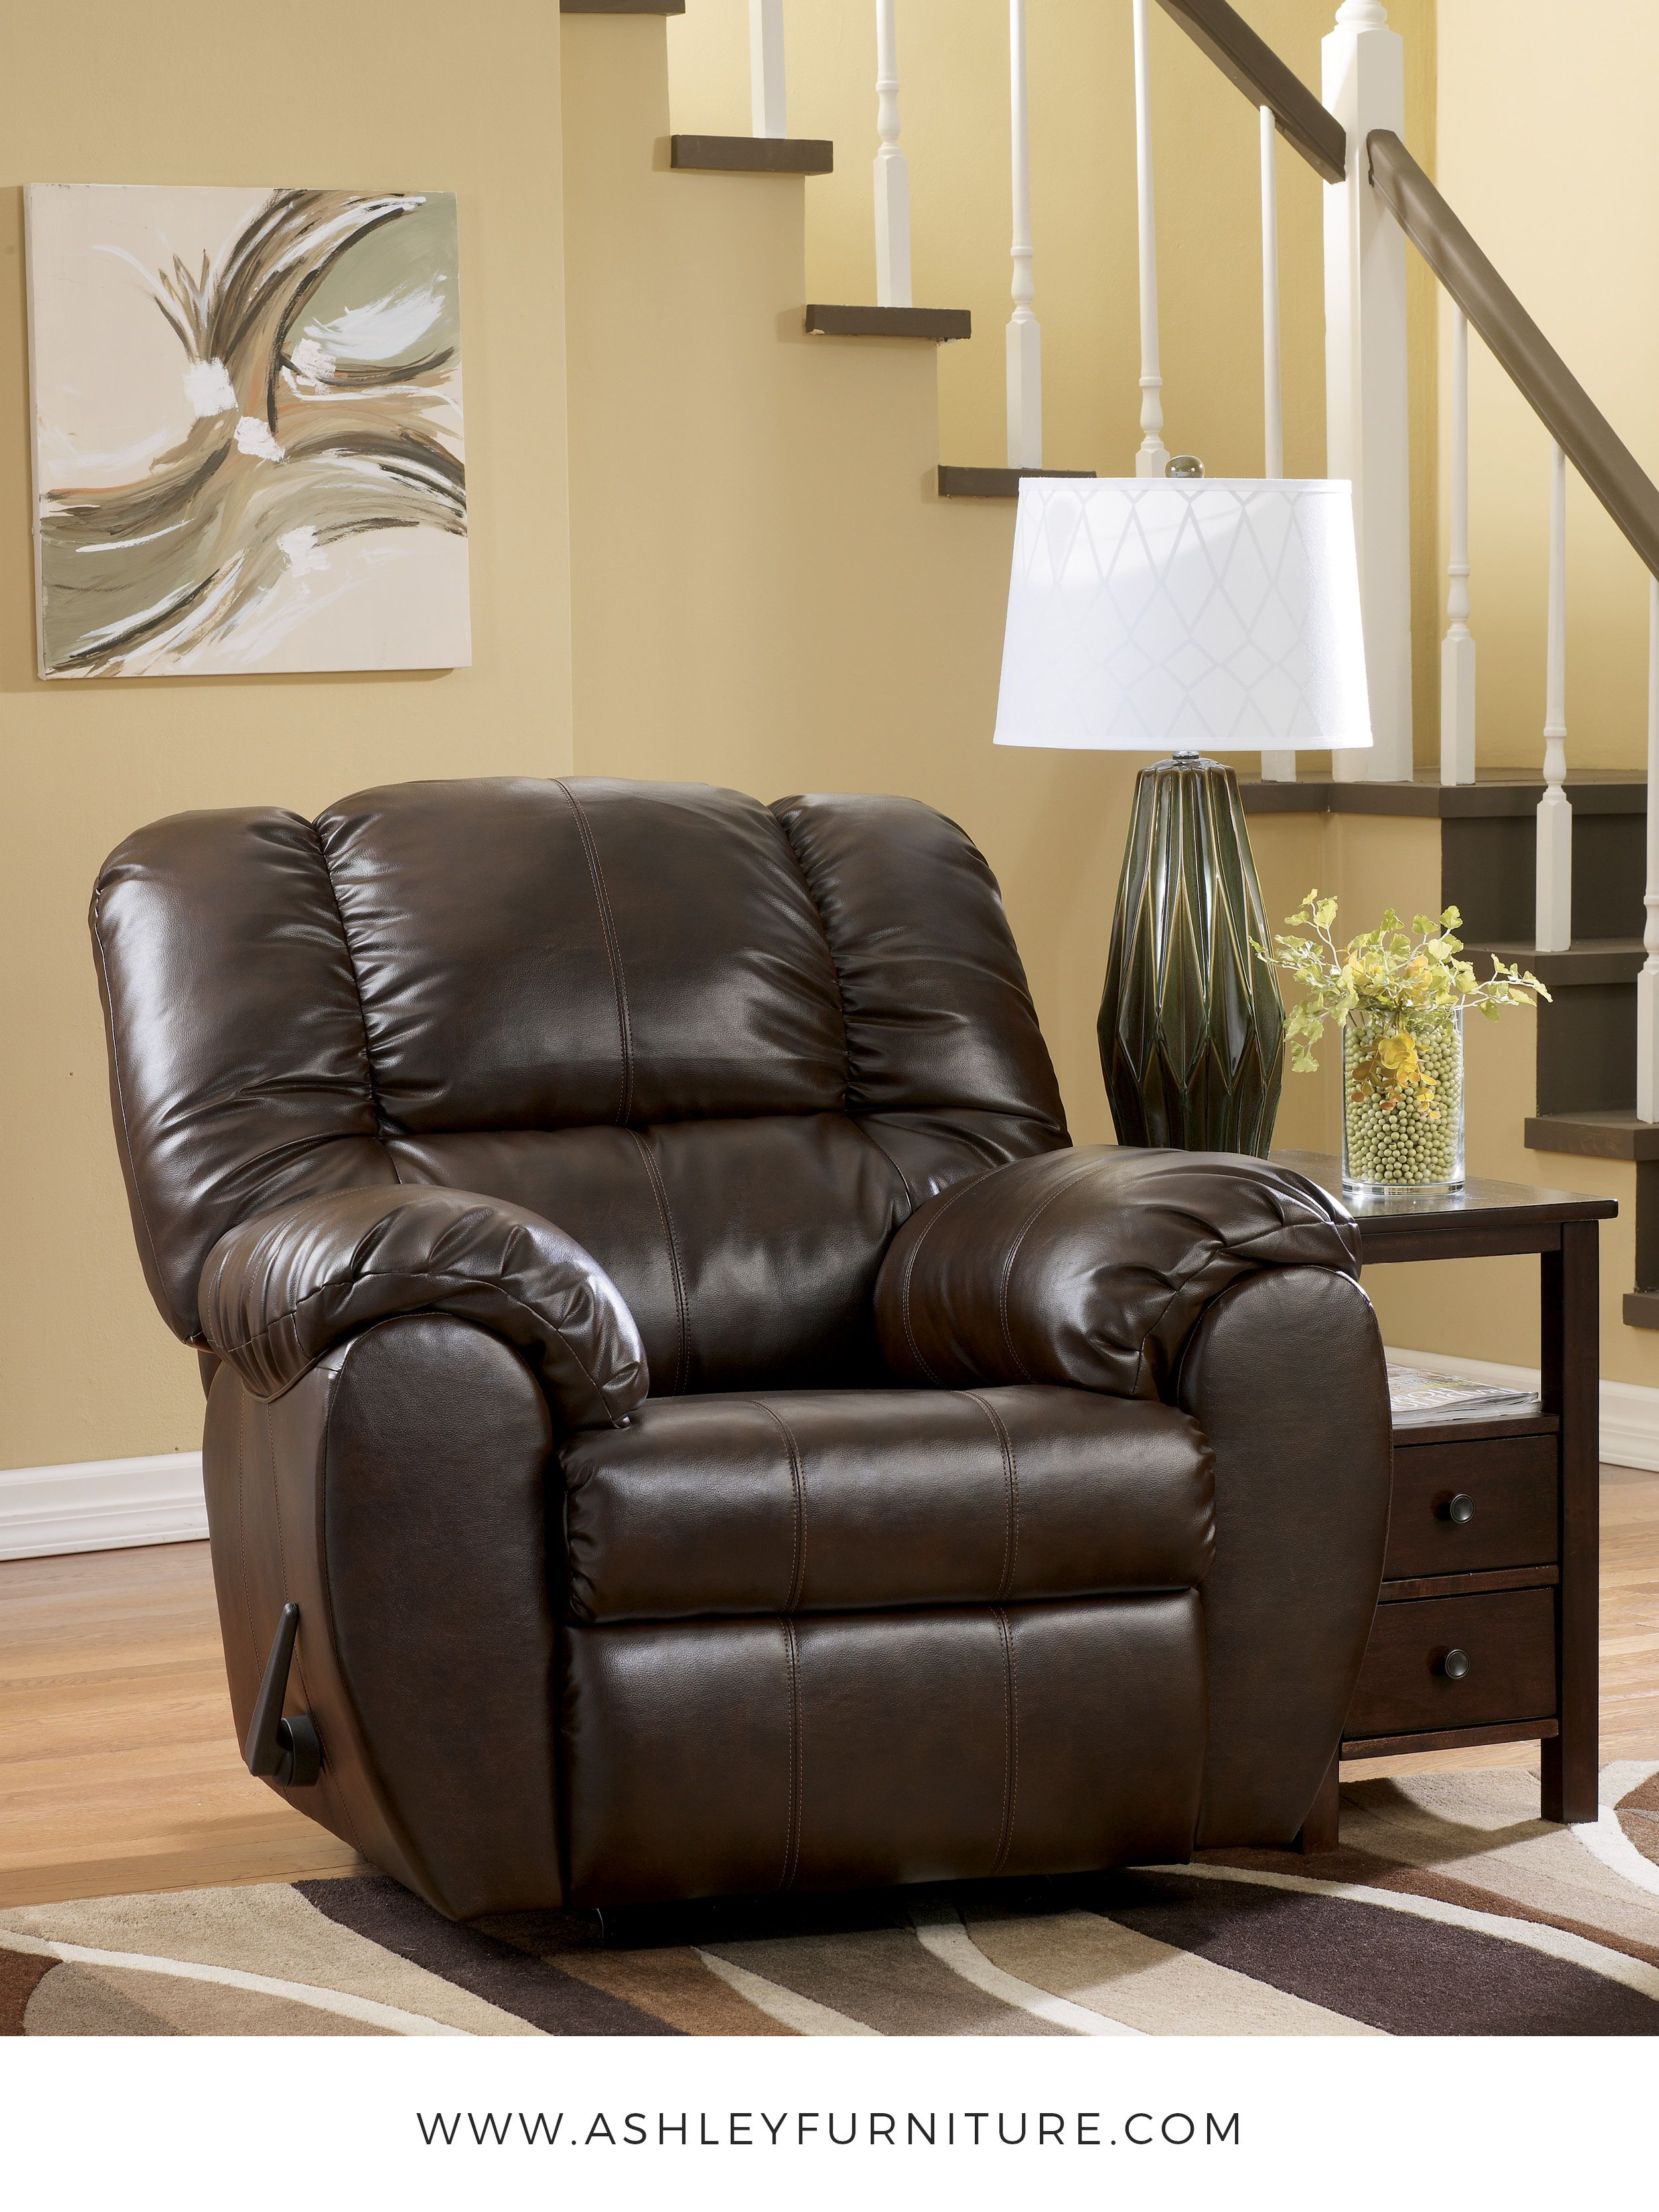 Ashley Furniture Recliner Chairs Dylan Durablend Espresso Rocker Recliner By Ashley Furniture